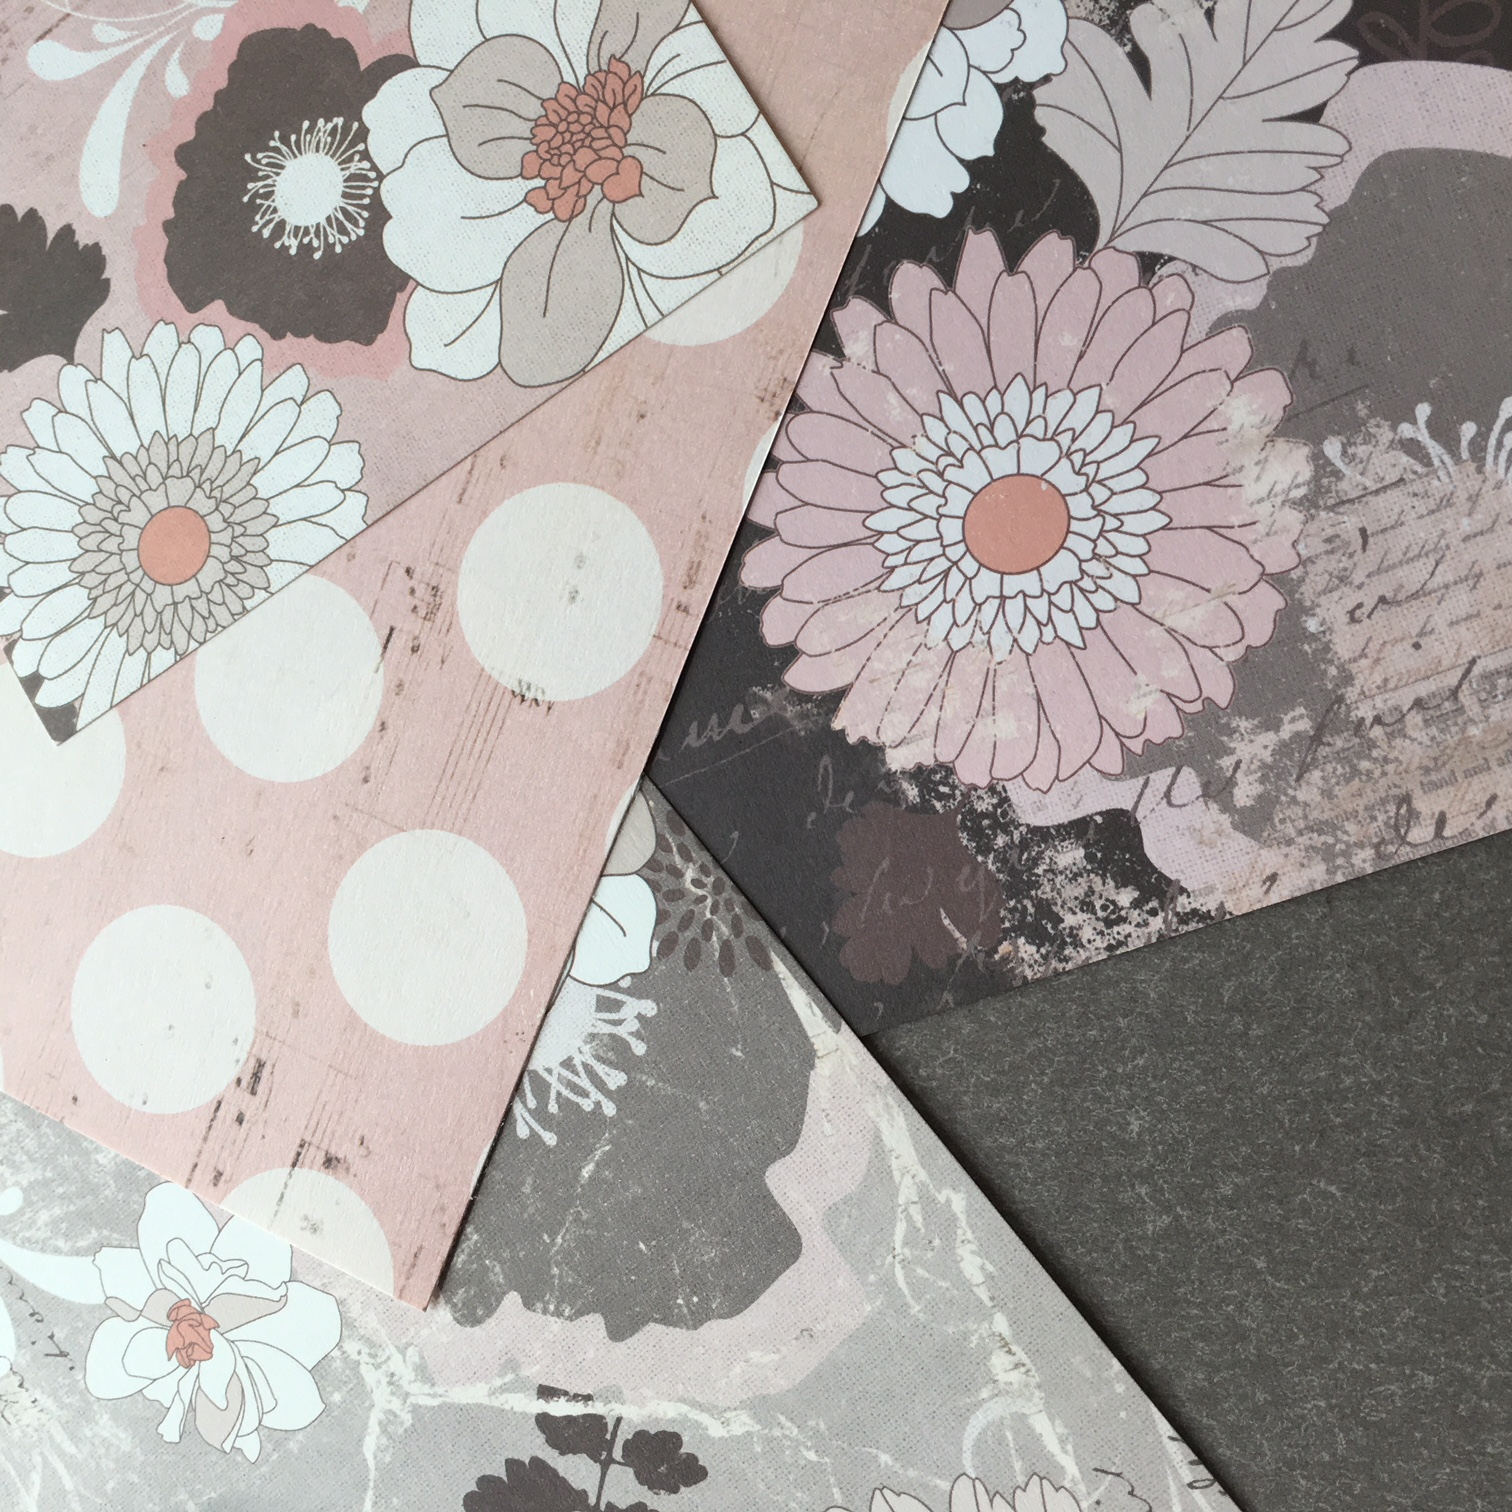 craft papers in rink, grey and brown